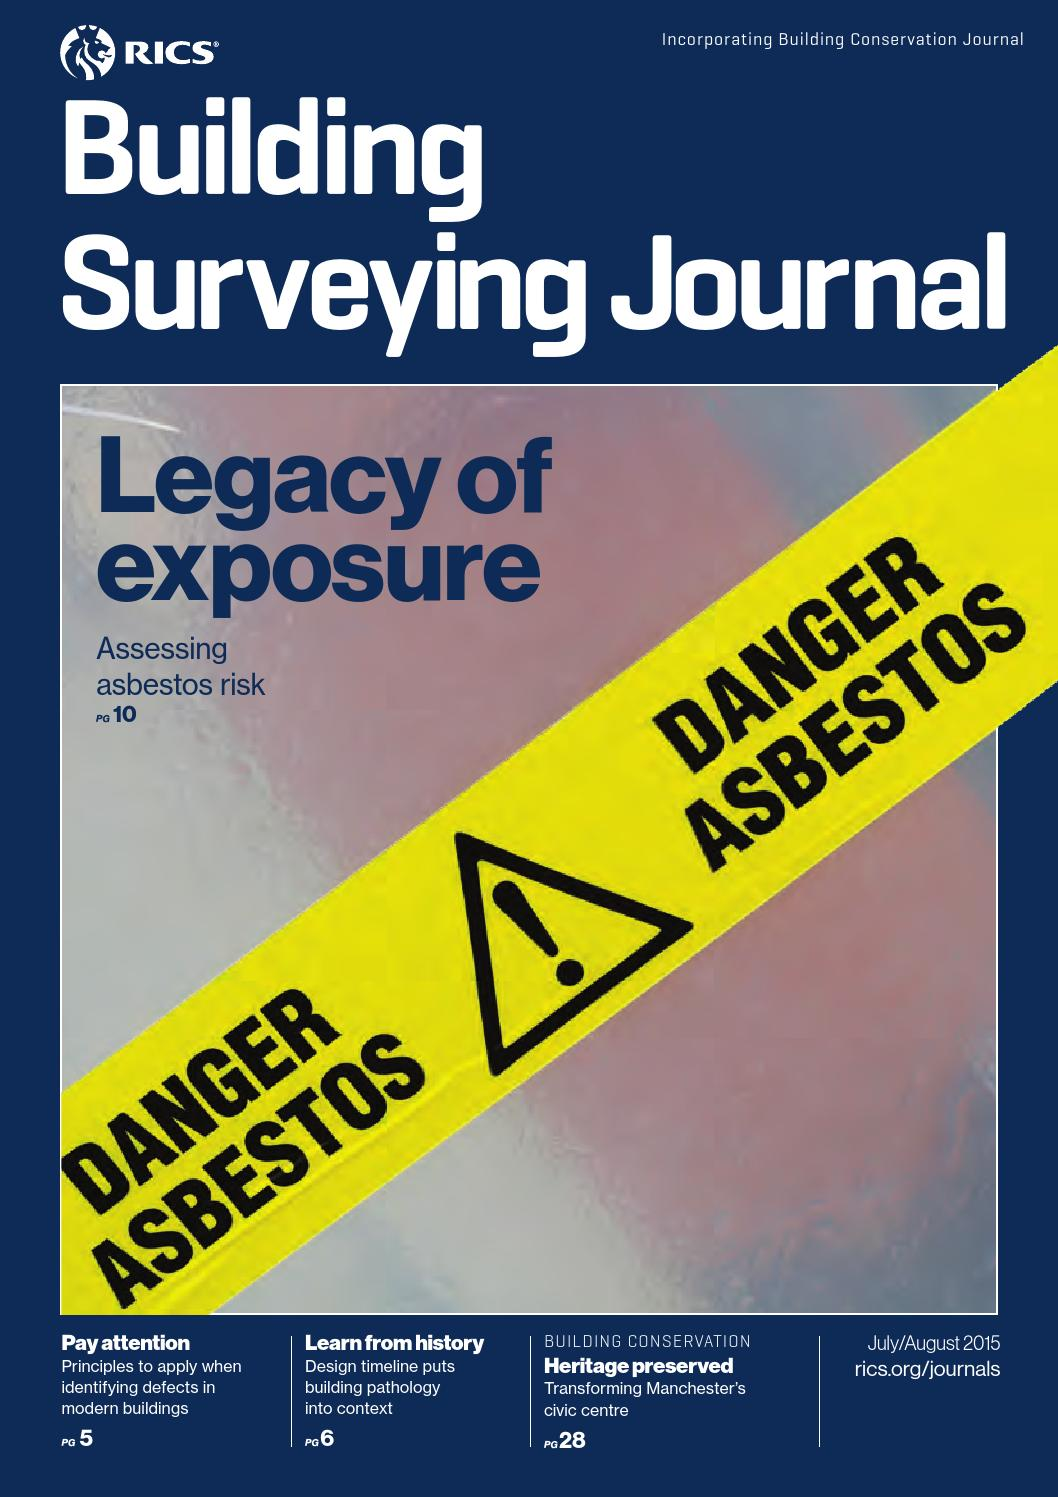 Building Surveying Journal July-August 2015 by RICS - issuu